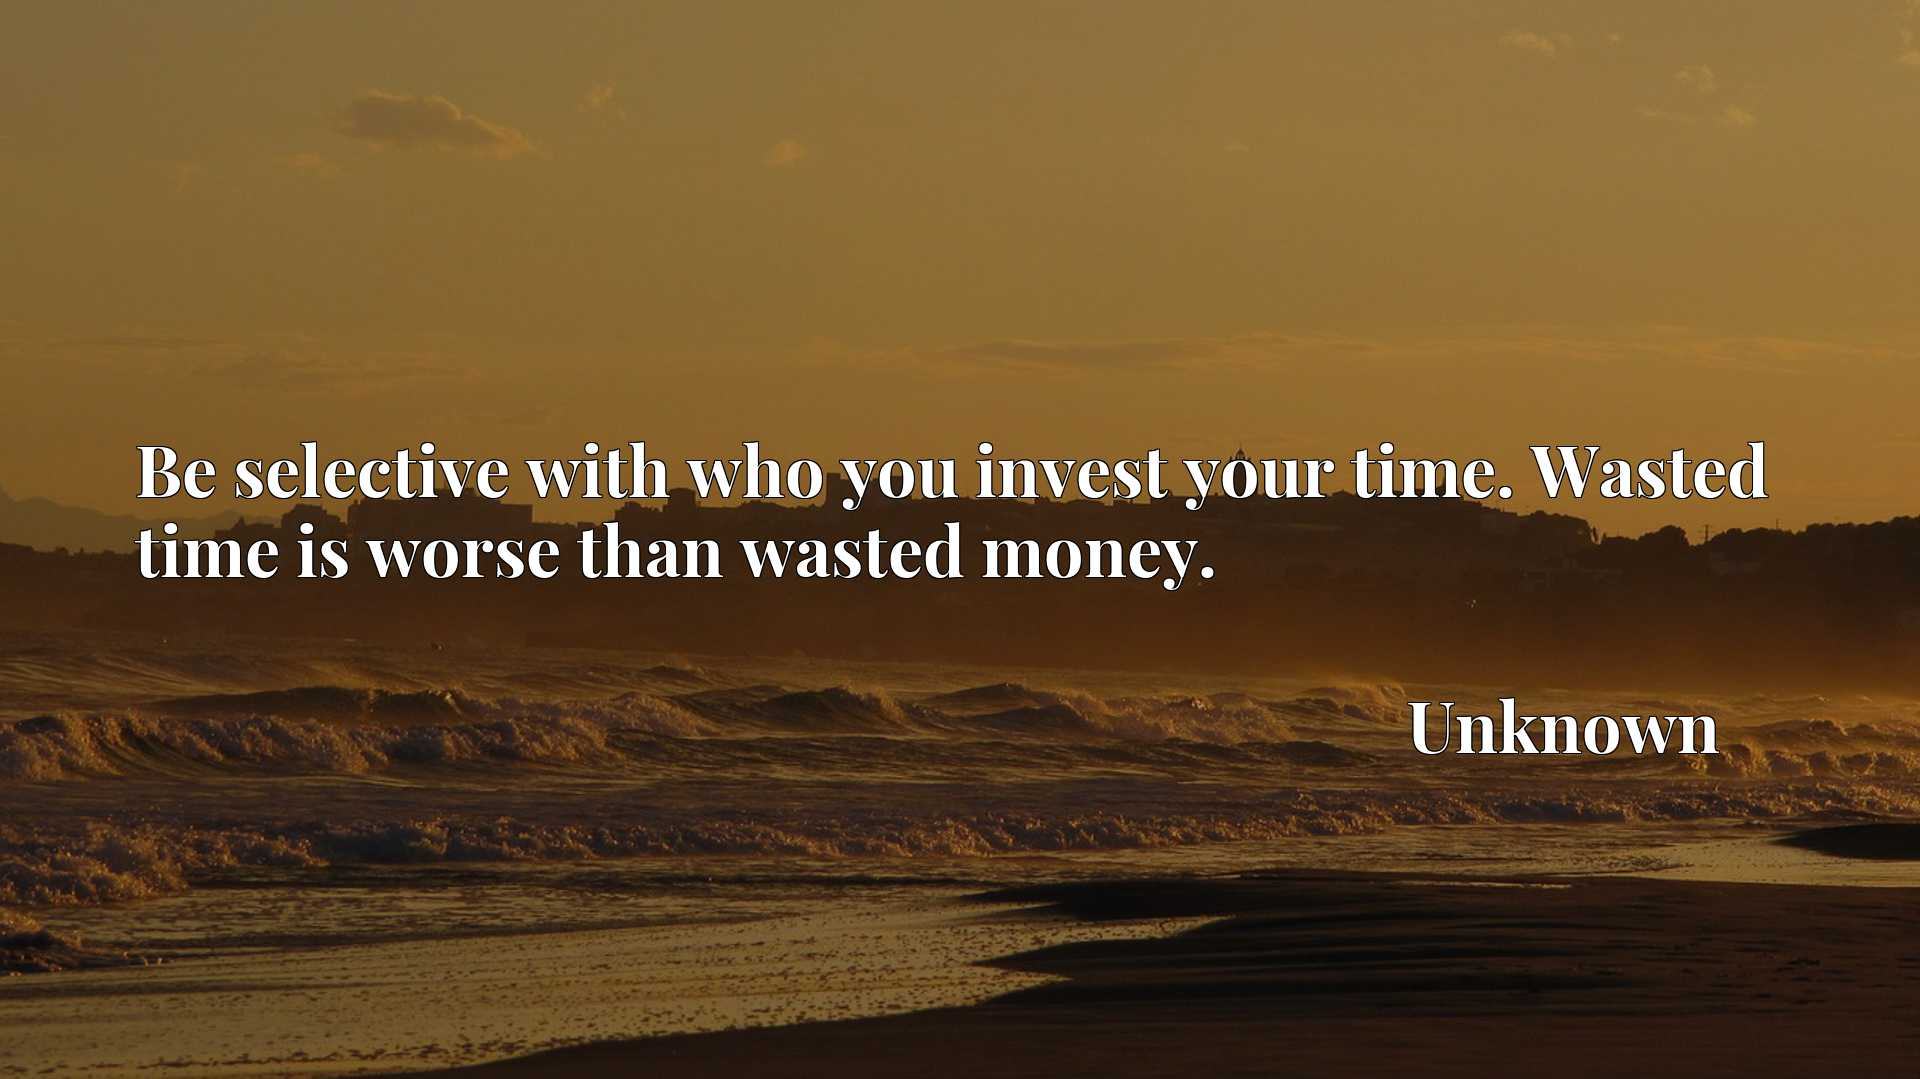 Be selective with who you invest your time. Wasted time is worse than wasted money.